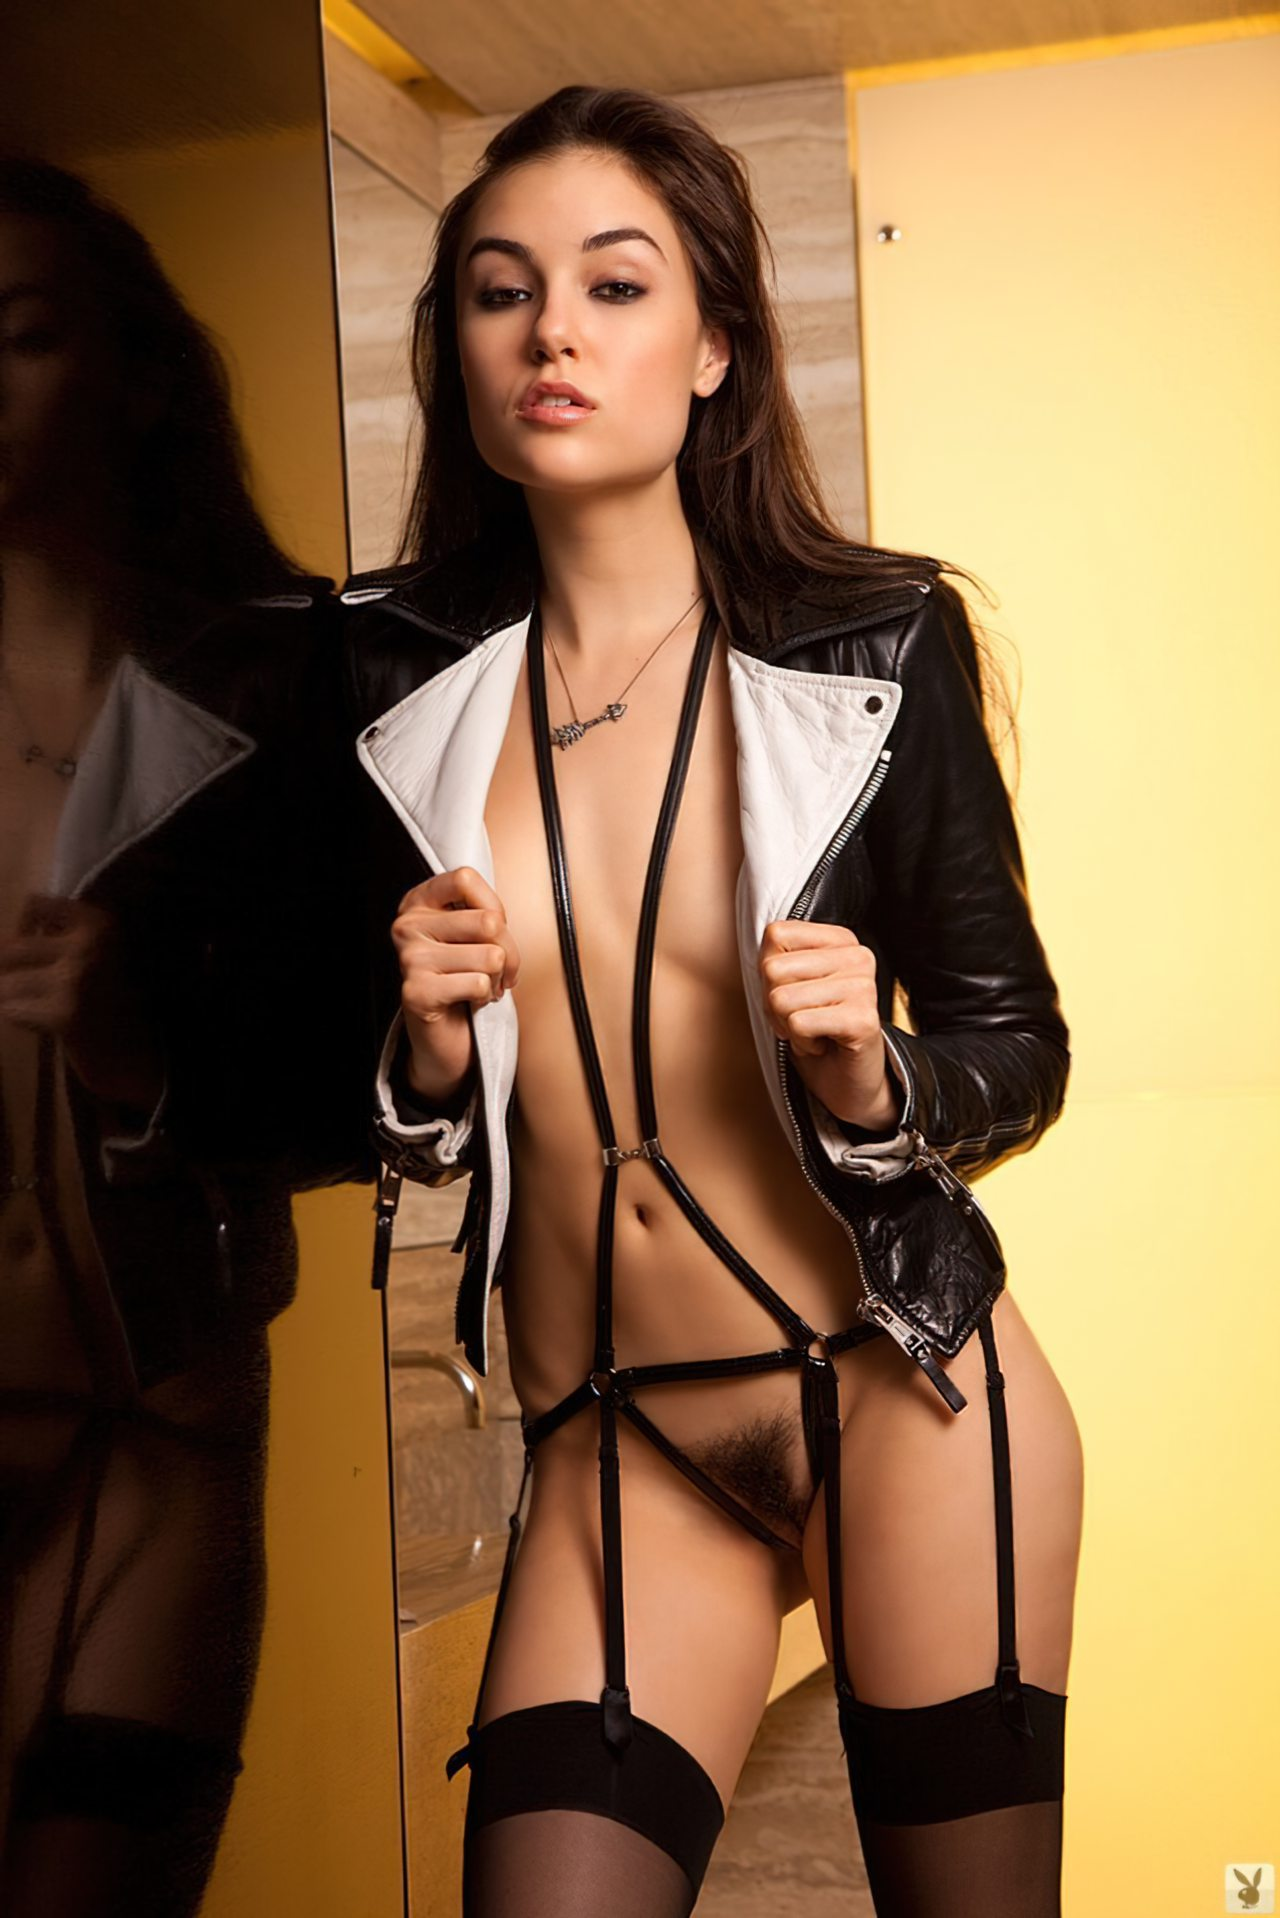 Sasha Grey na Playboy (19)